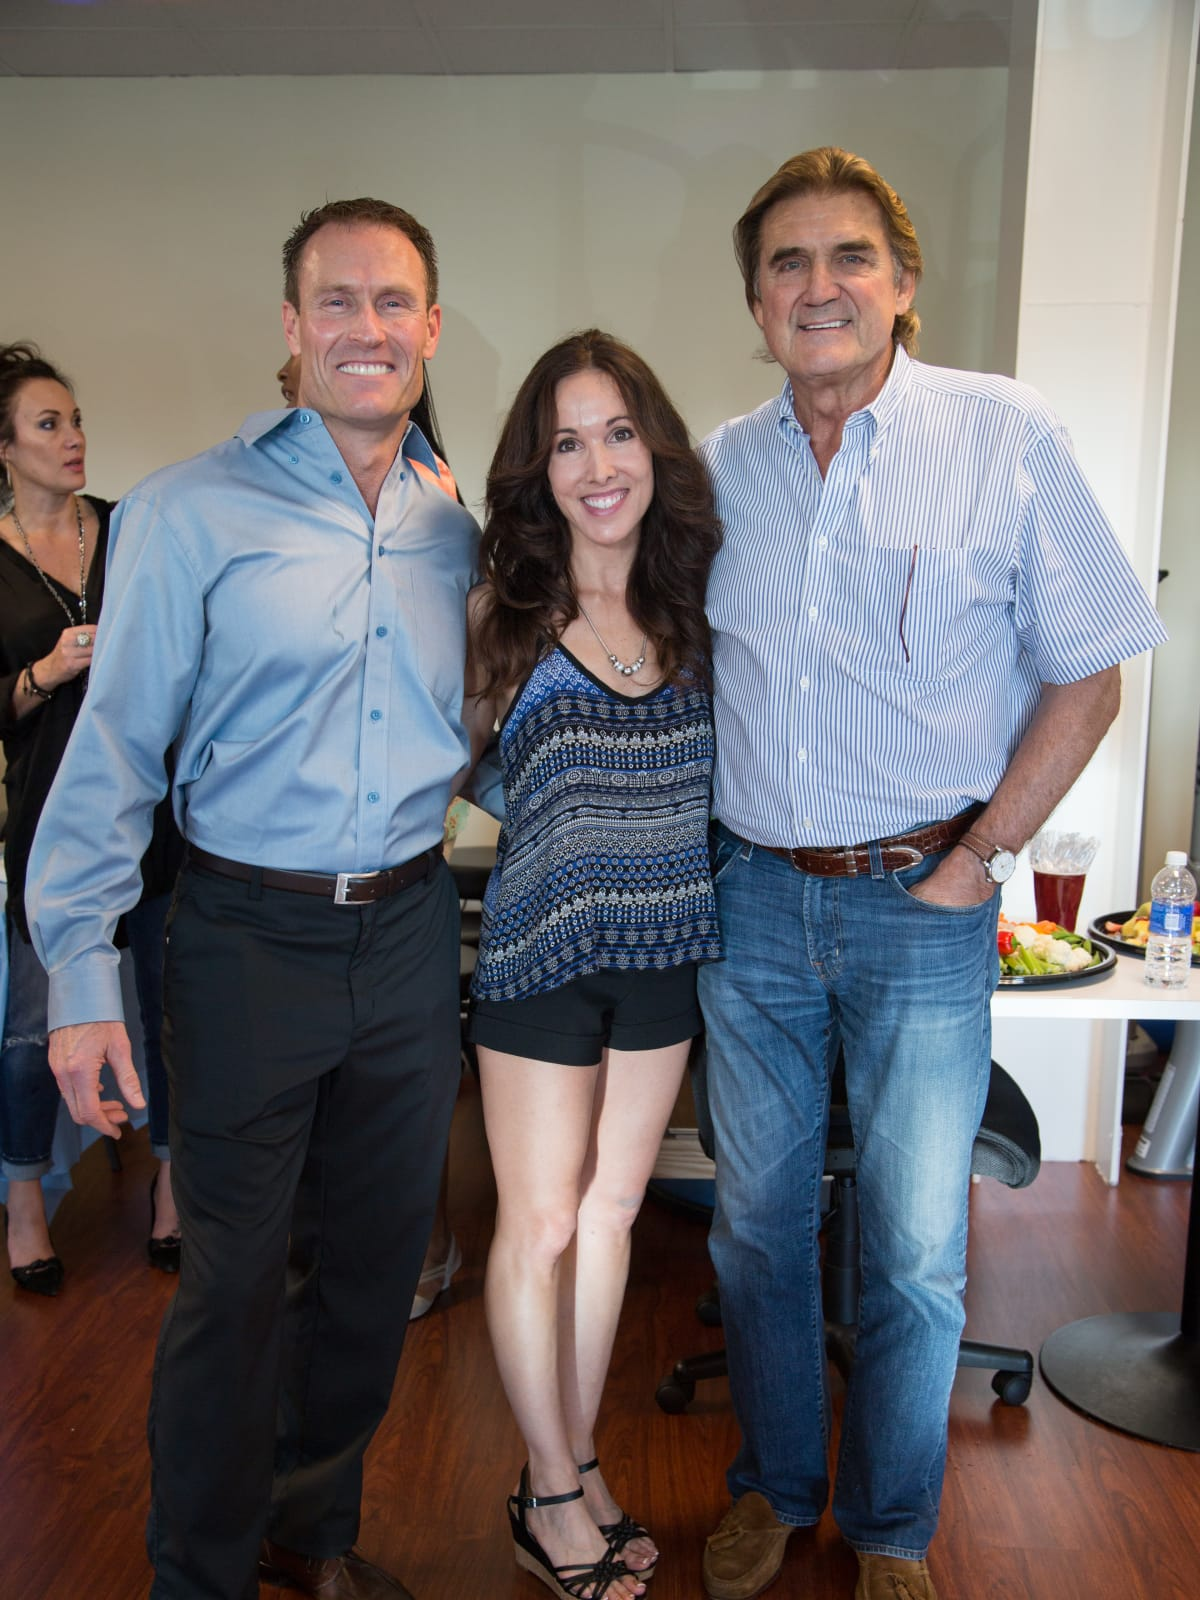 News, Shelby, Luv Ya Blue party, August 2015, Dean Theriot, Jennifer Theriot and Dan Pastorini